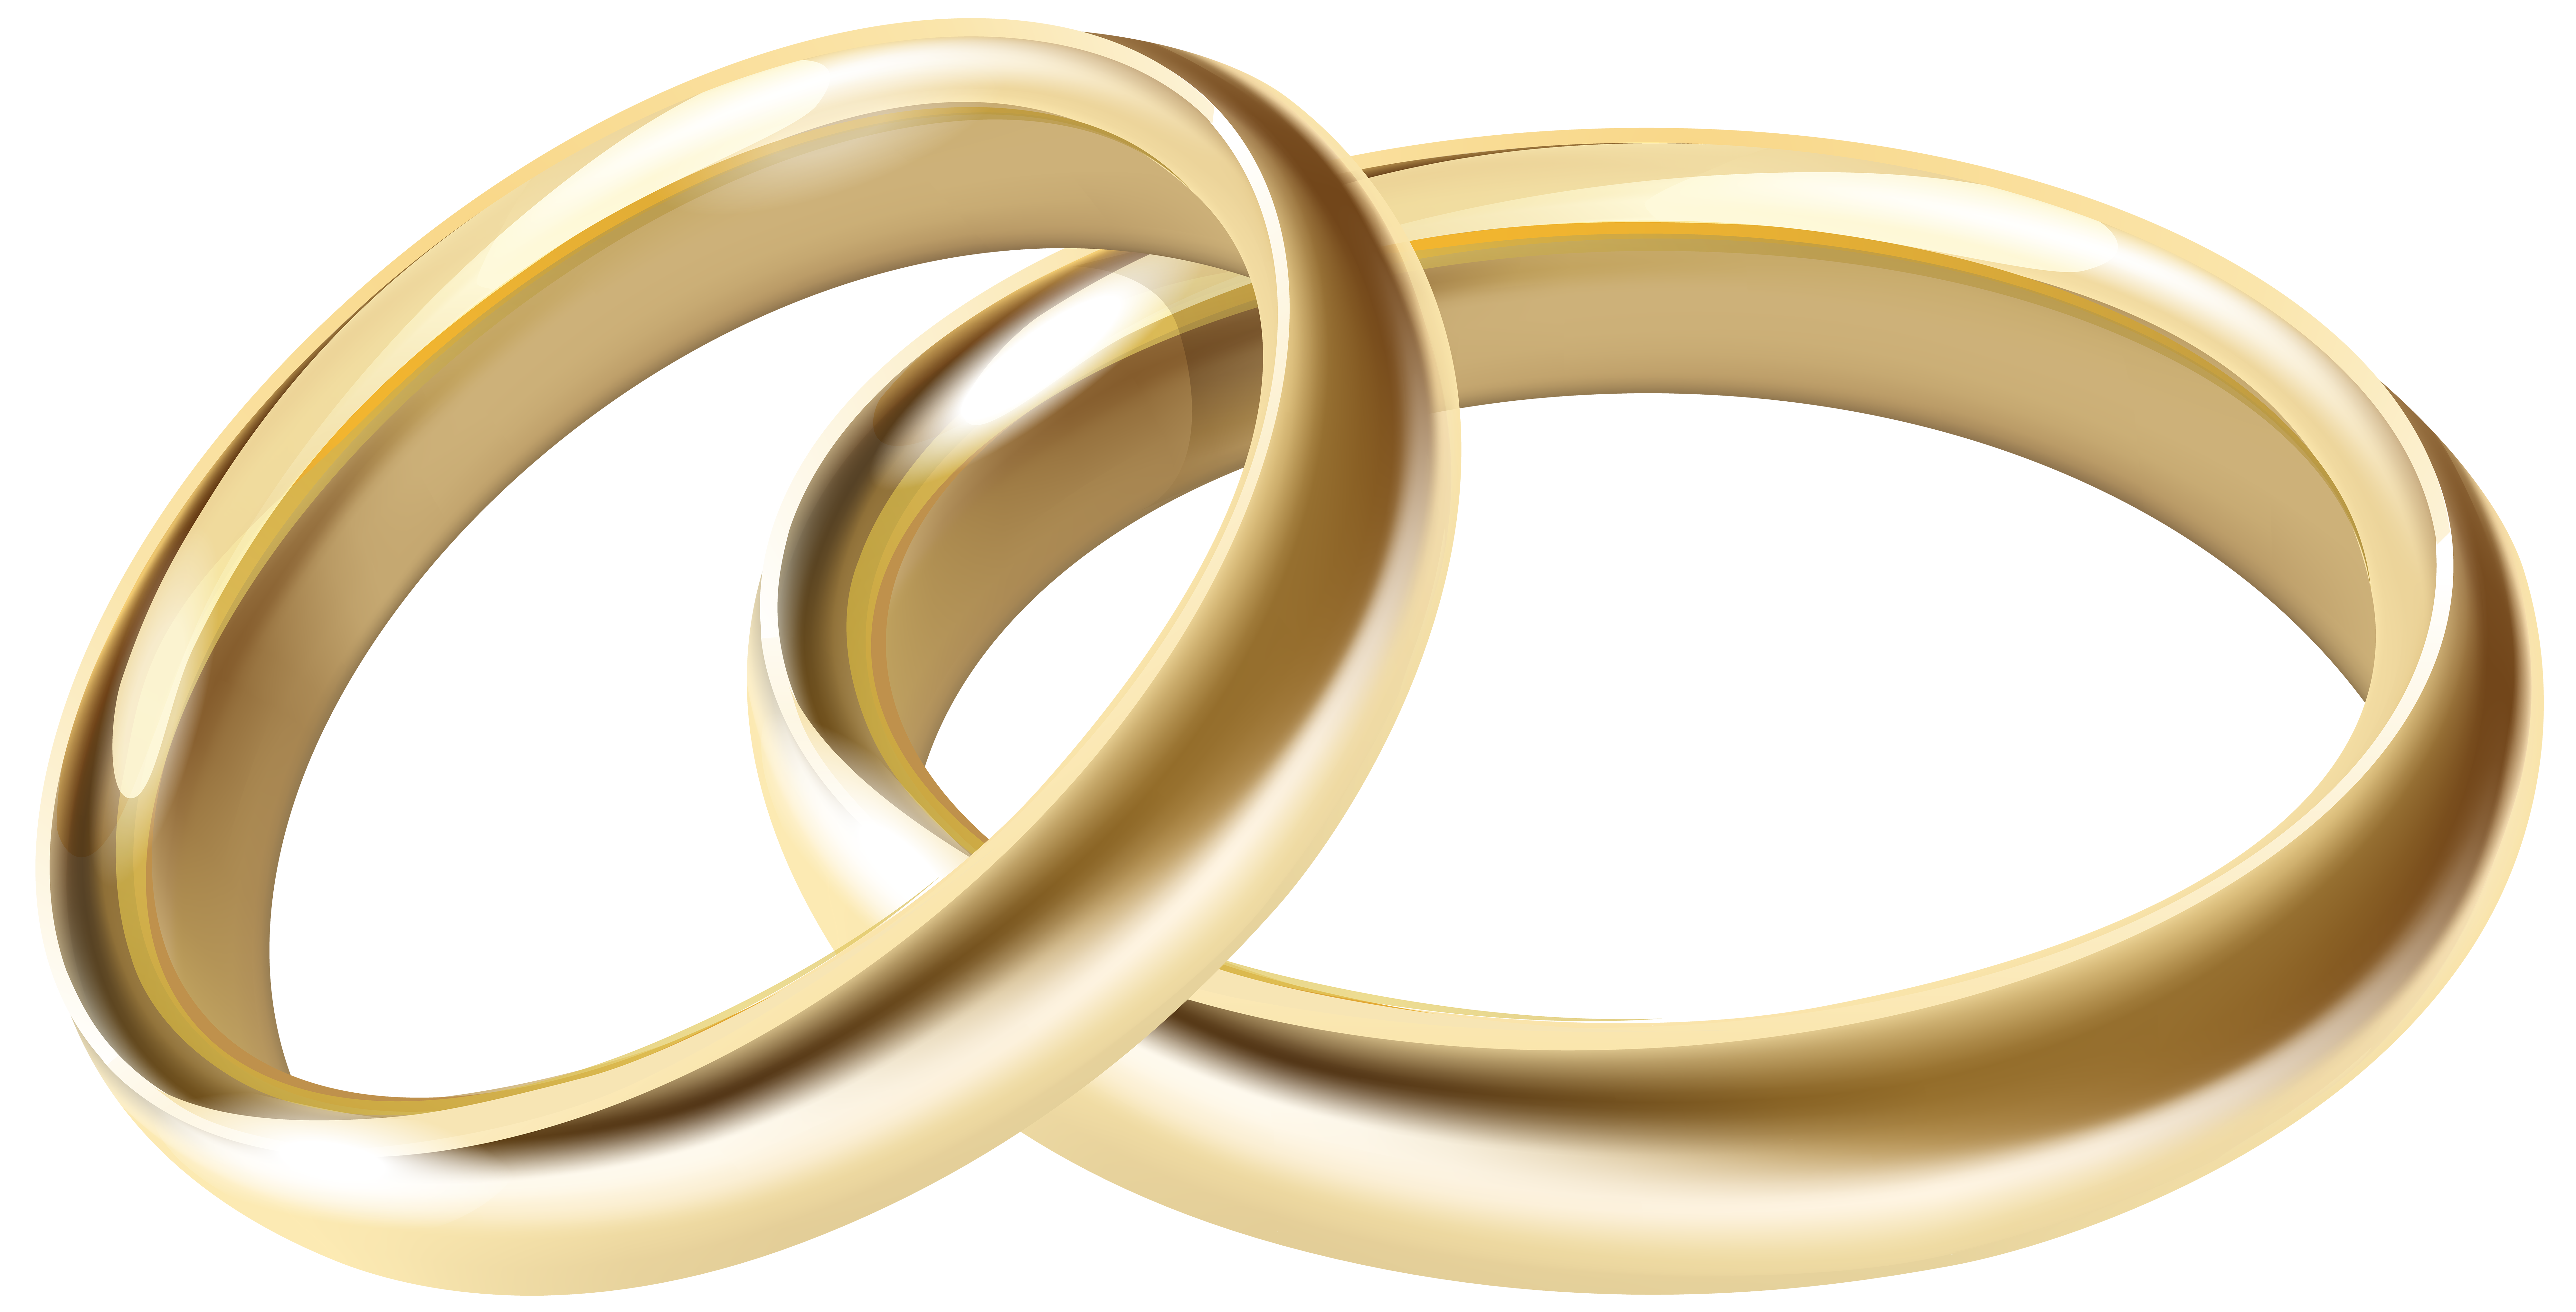 Wedding rings heart clipart picture transparent Wedding Rings Transparent PNG Clip Art Image | Gallery Yopriceville ... picture transparent